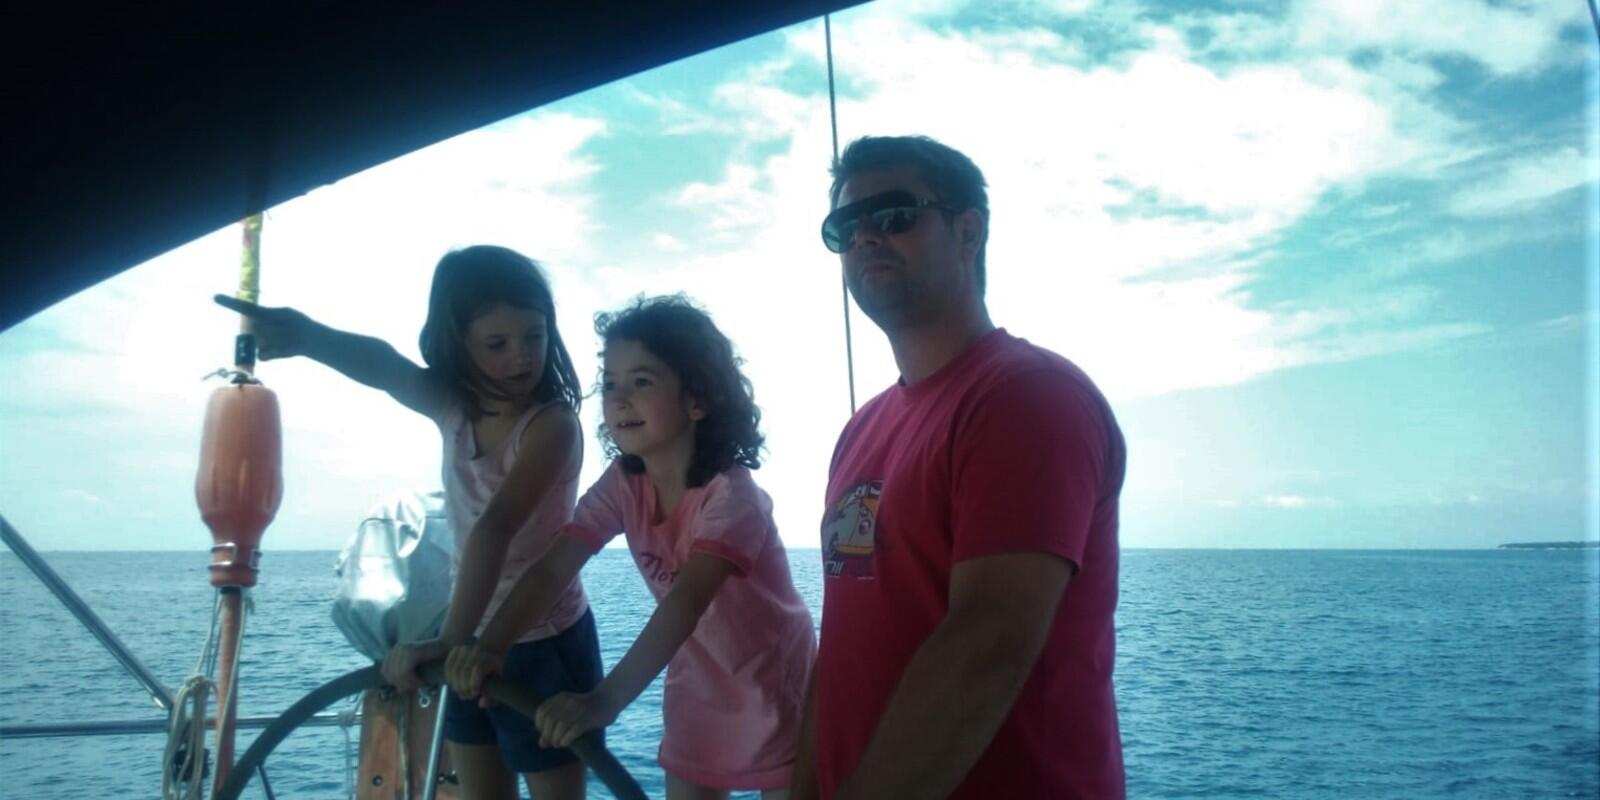 Sailing with the whole family